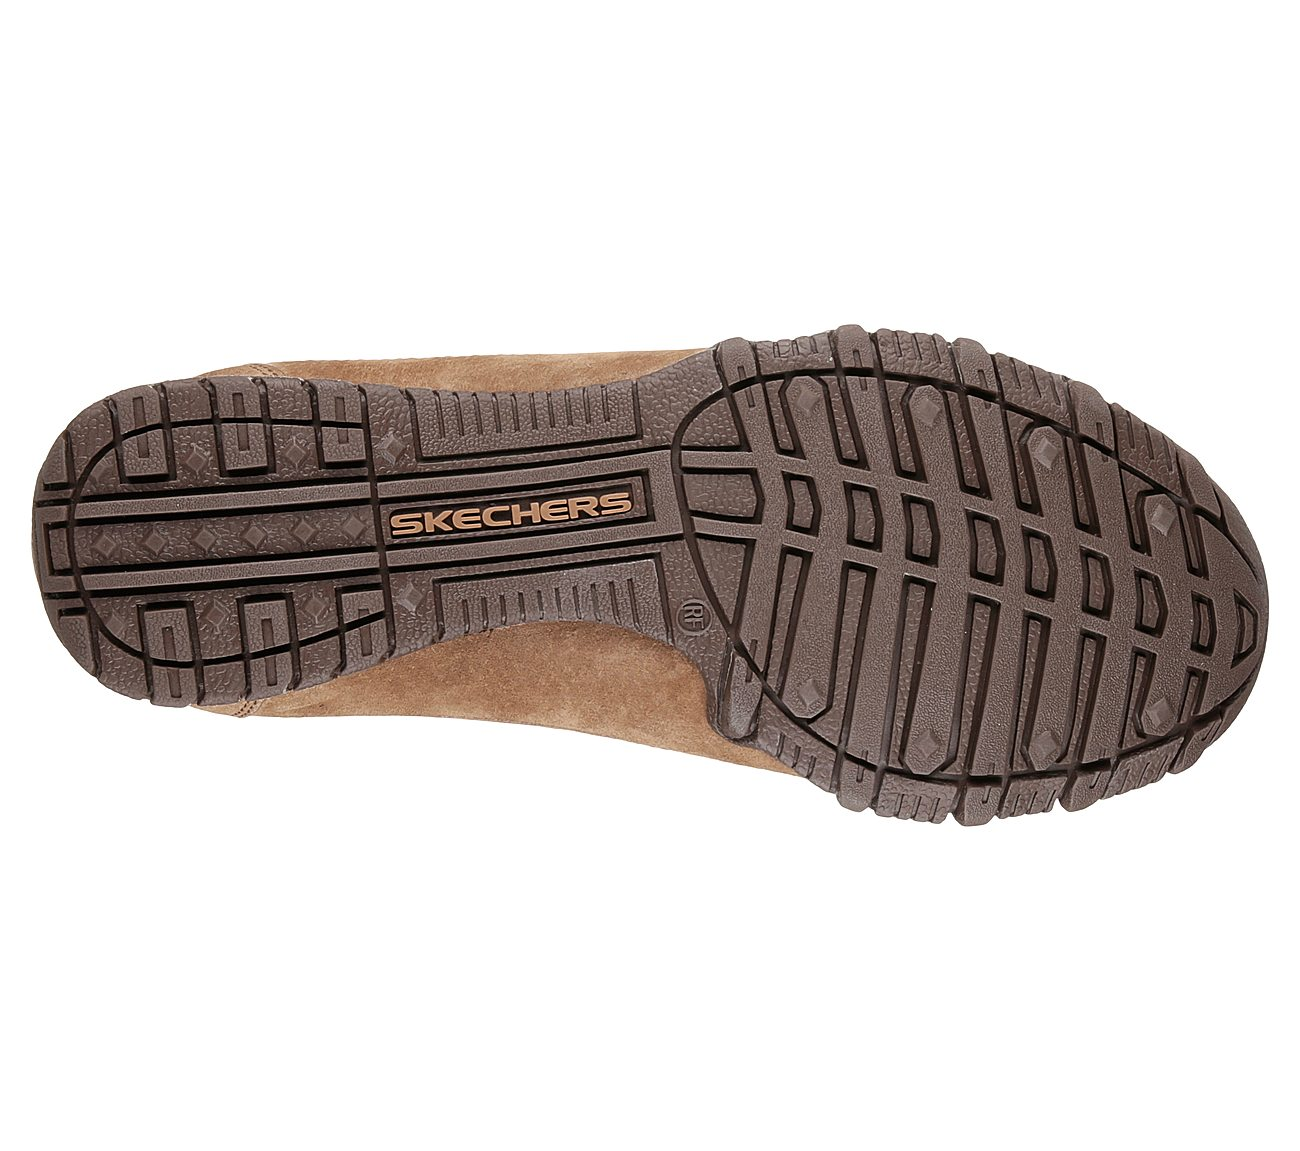 264f4106b364 Buy SKECHERS Relaxed Fit  Bikers - Curbed Modern Comfort Shoes only ...